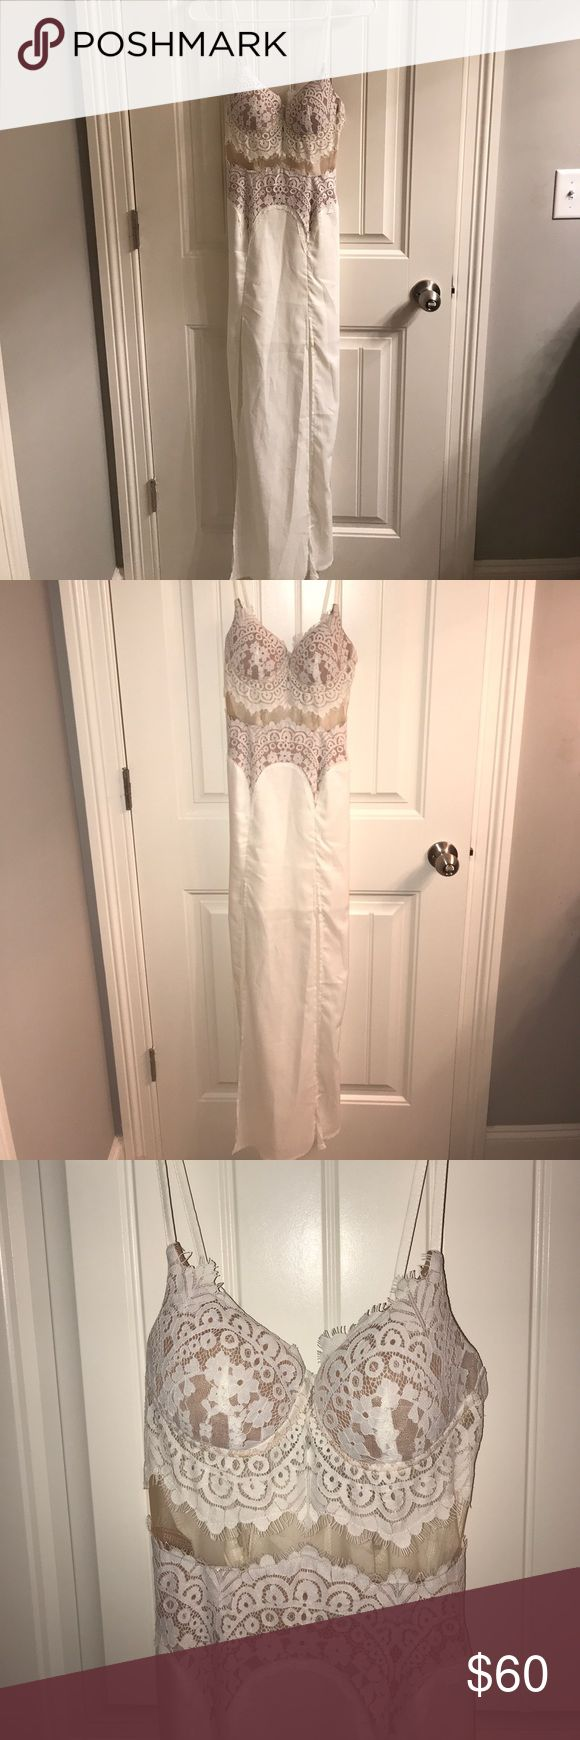 Hello Molly maxi dress Super cute and fun maxi dress with two slits and a pretty lace work and mesh bodice! New with tags. hello Molly Dresses Maxi